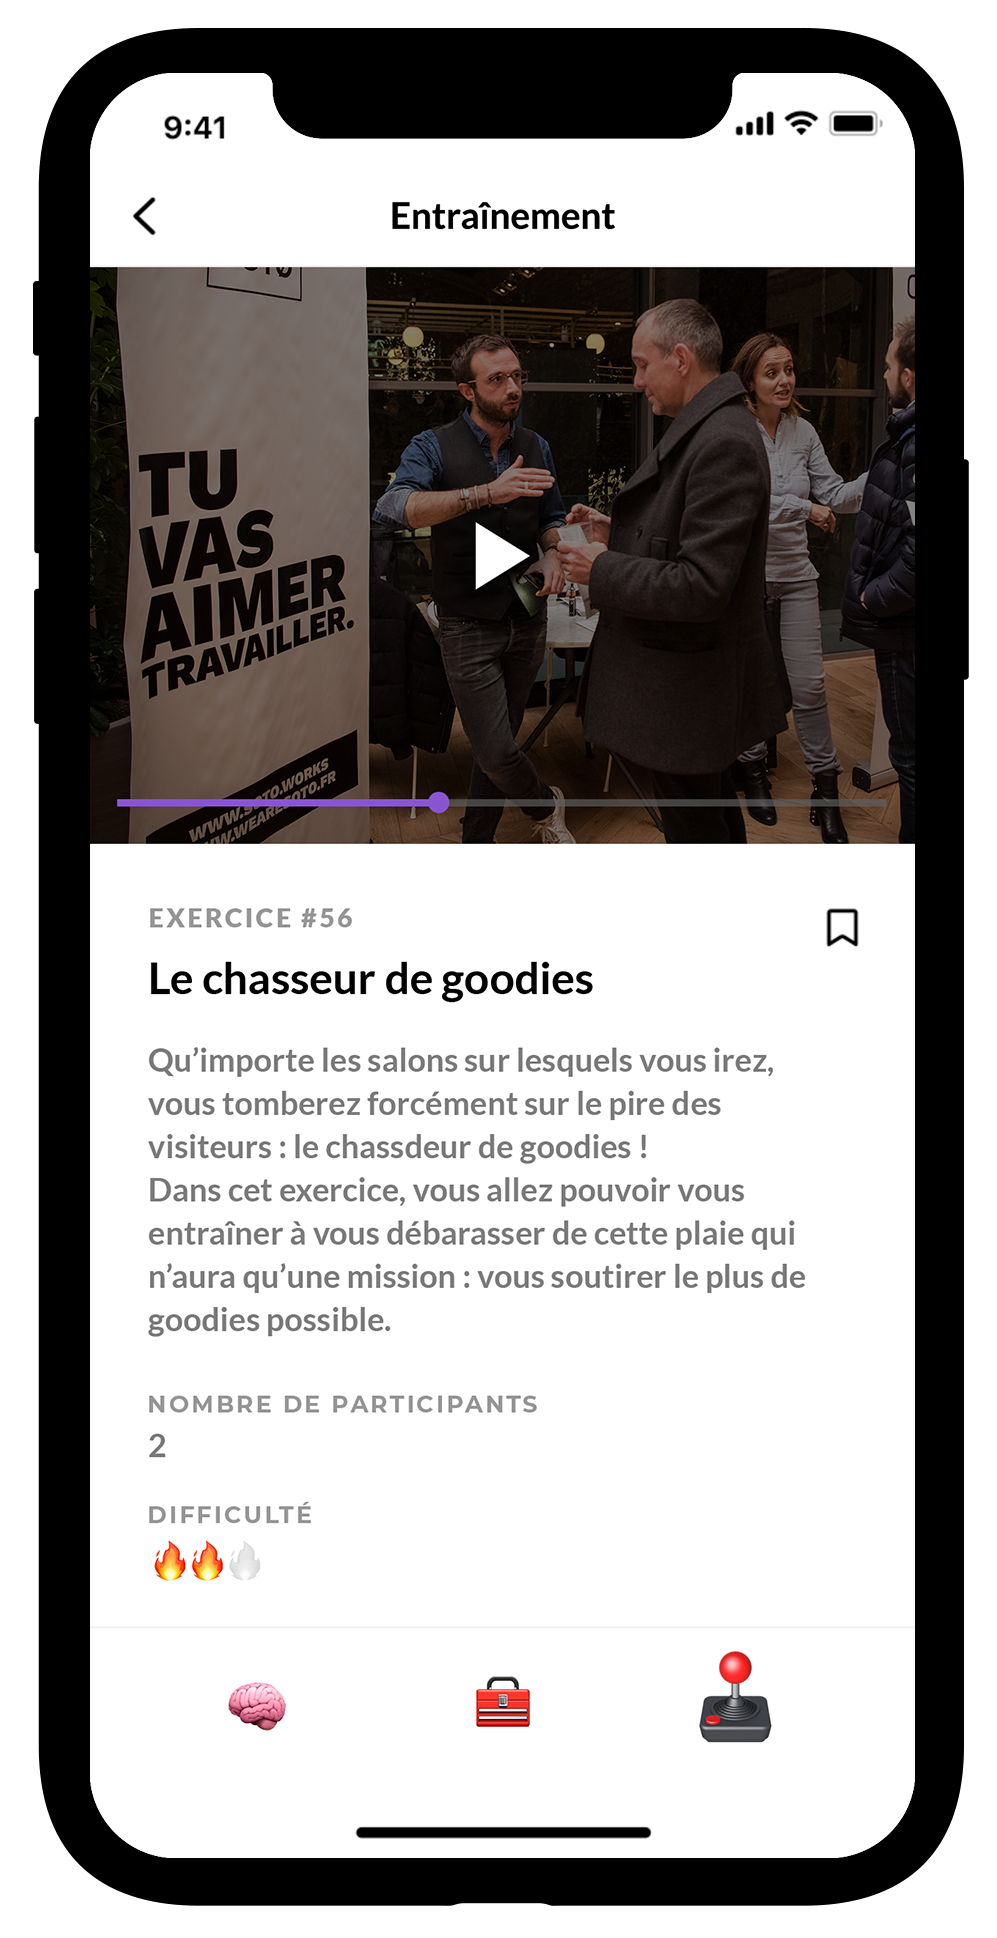 Mockup de la partie Practice de l'application Ambassadr